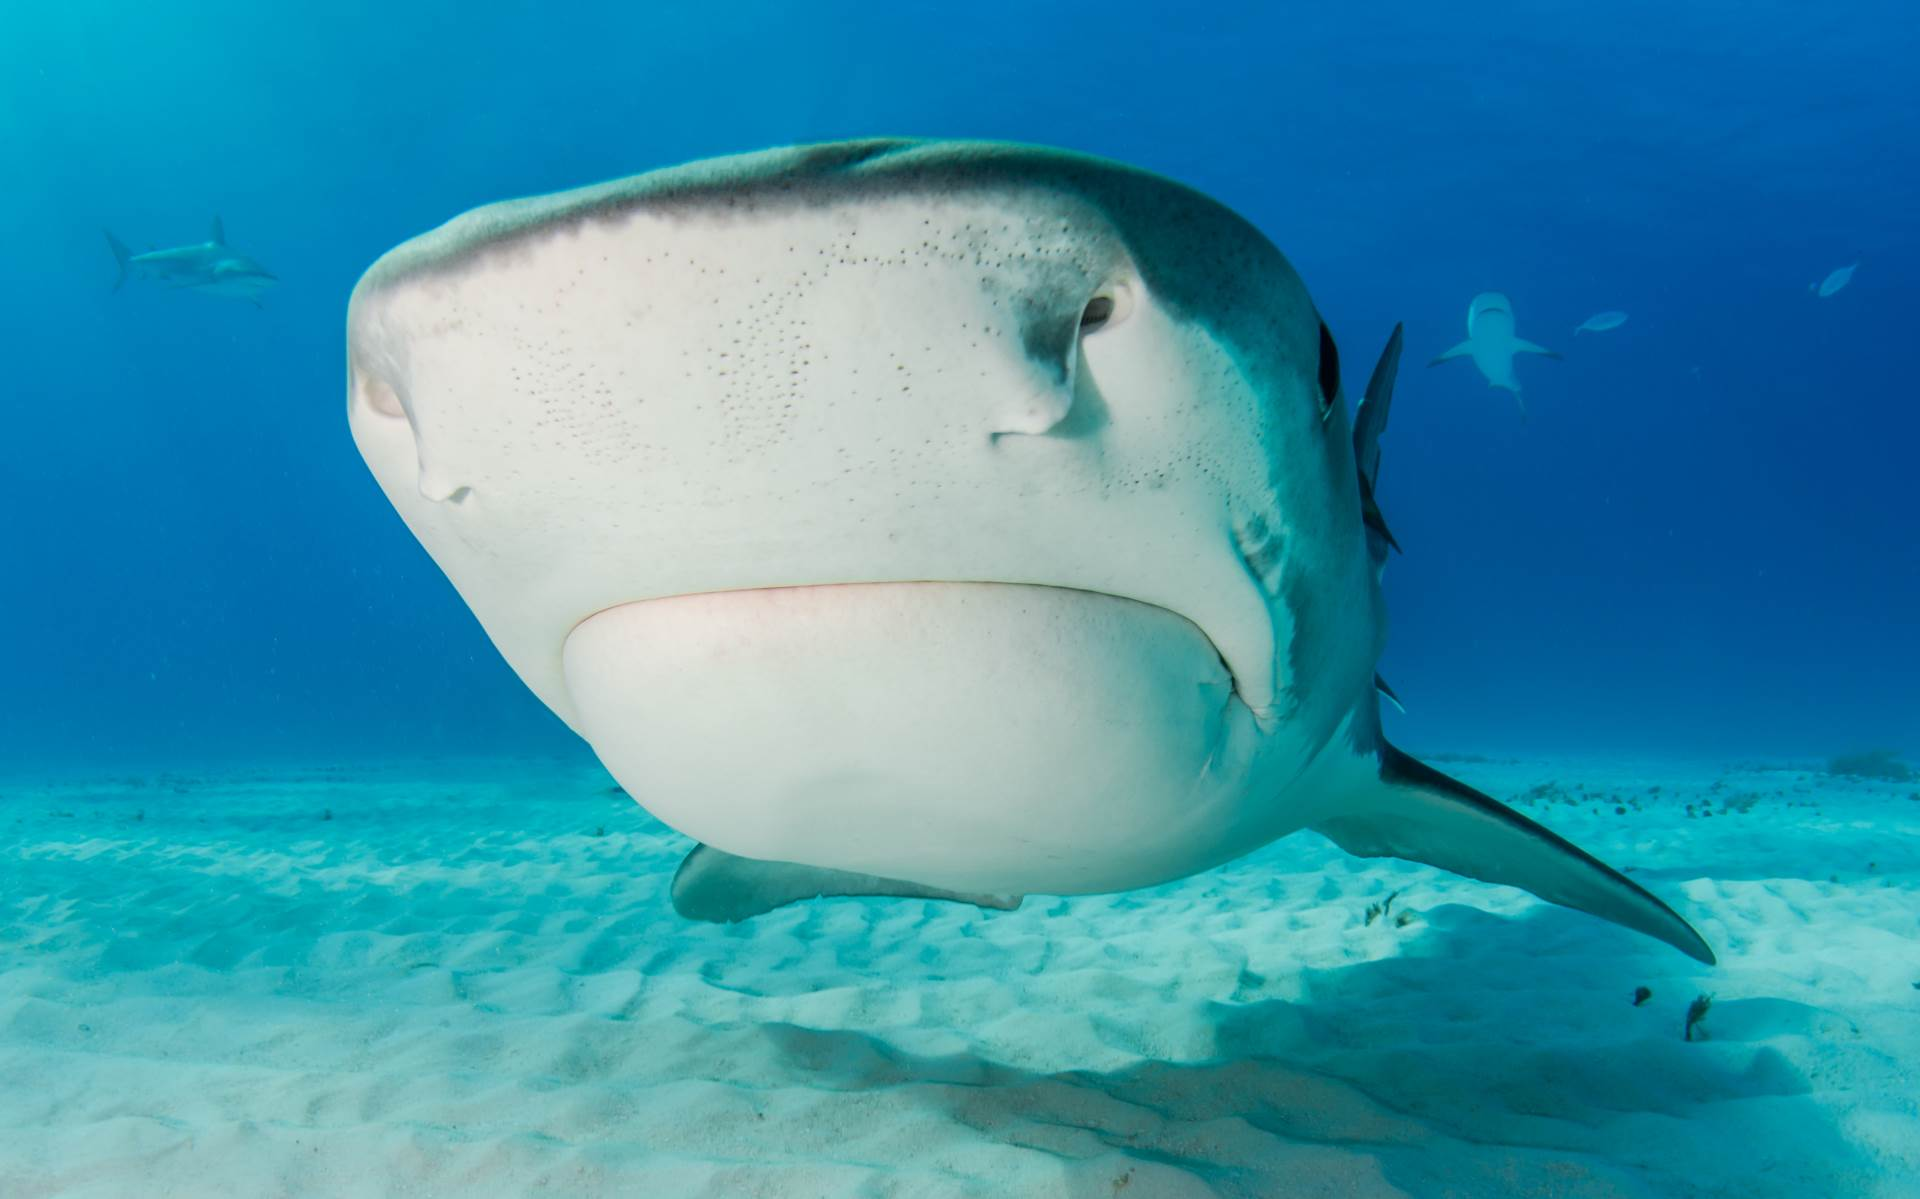 A tiger Shark investigates my camera rig allowing a close look at the , unique sensory organs that act as the sharks sixth sense.